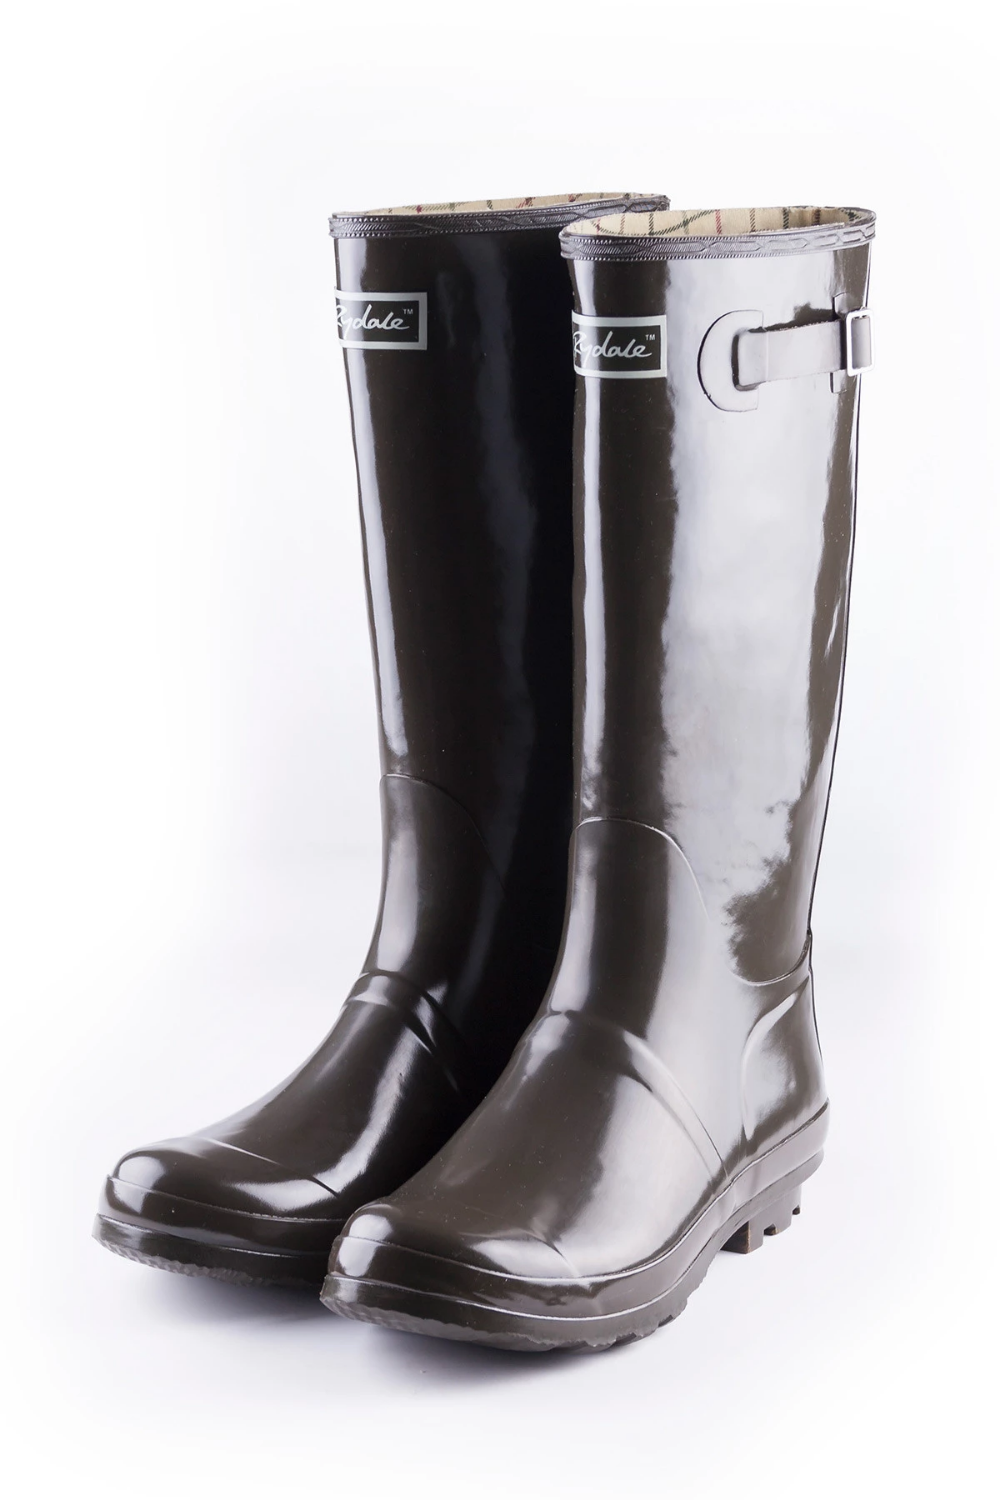 Classic Wellington Boots   Boots, Wellington boot, Country boots